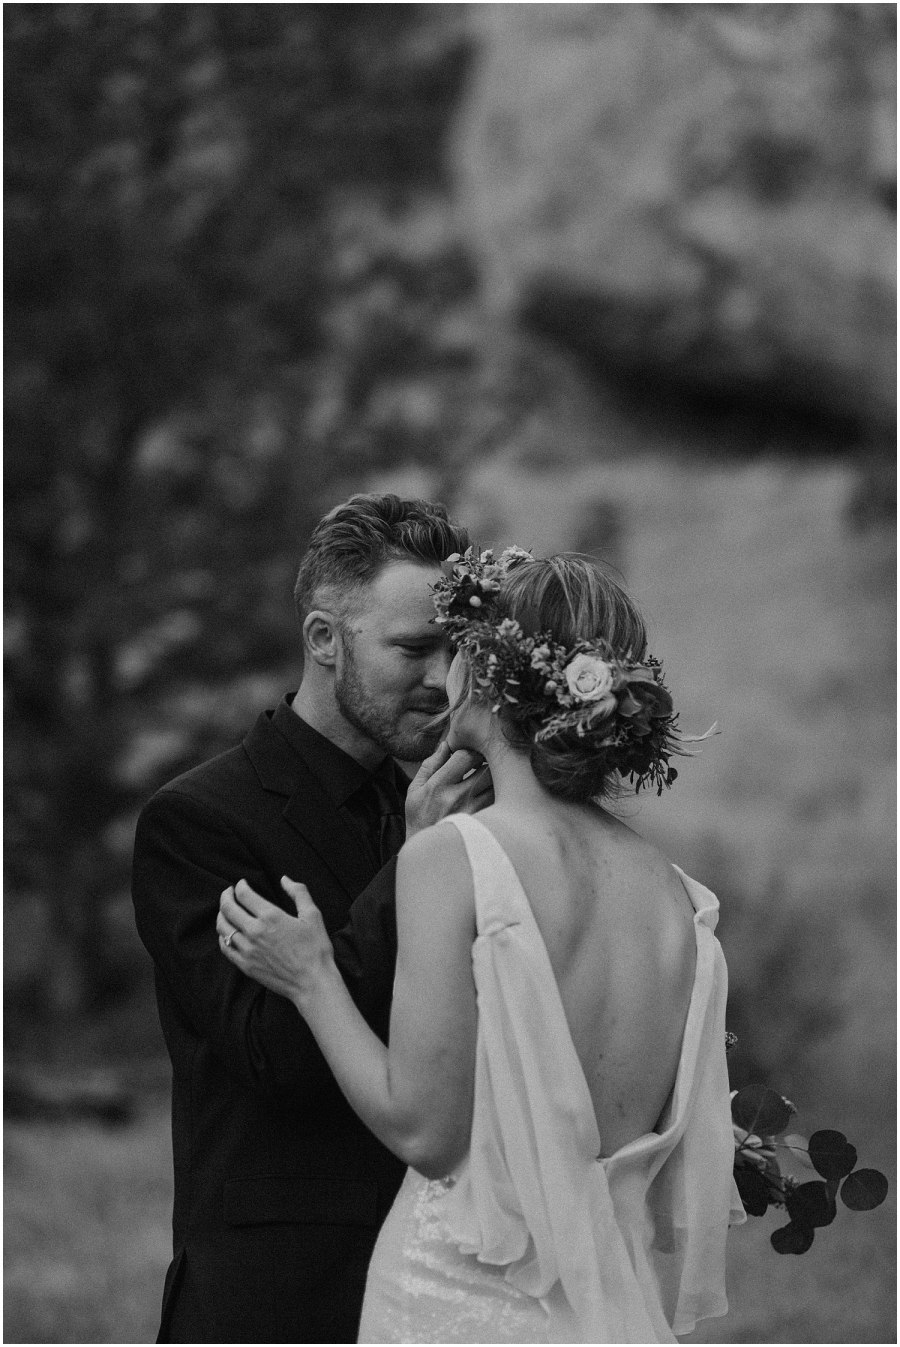 groom going for kiss at smith rock elopement oregon elopement and wedding photographer kyle szeto